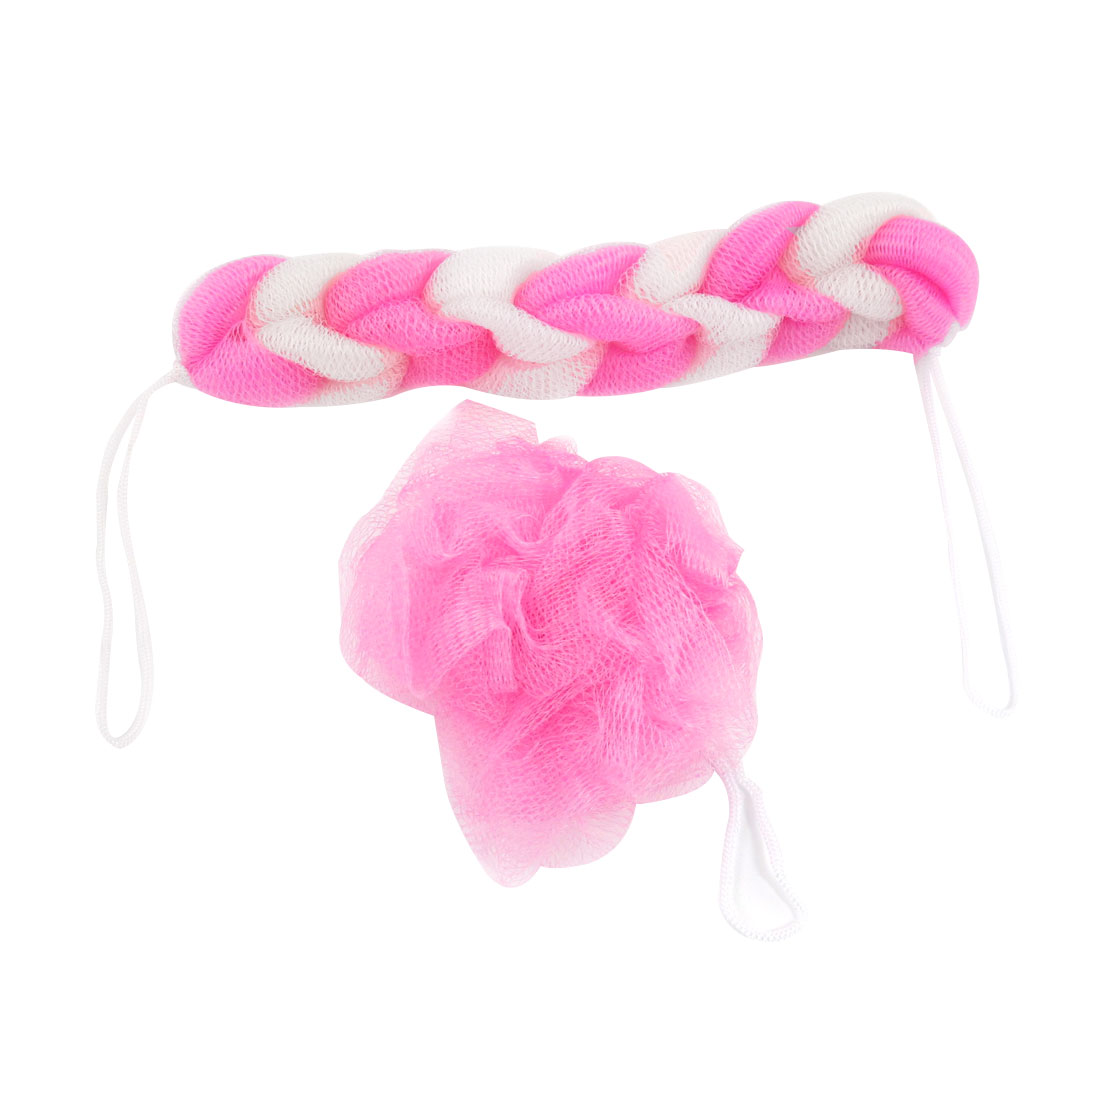 2 Pcs Bathroom Straps Design Pink White Nylon Meshy Bar Ball Bath Shower Pouf